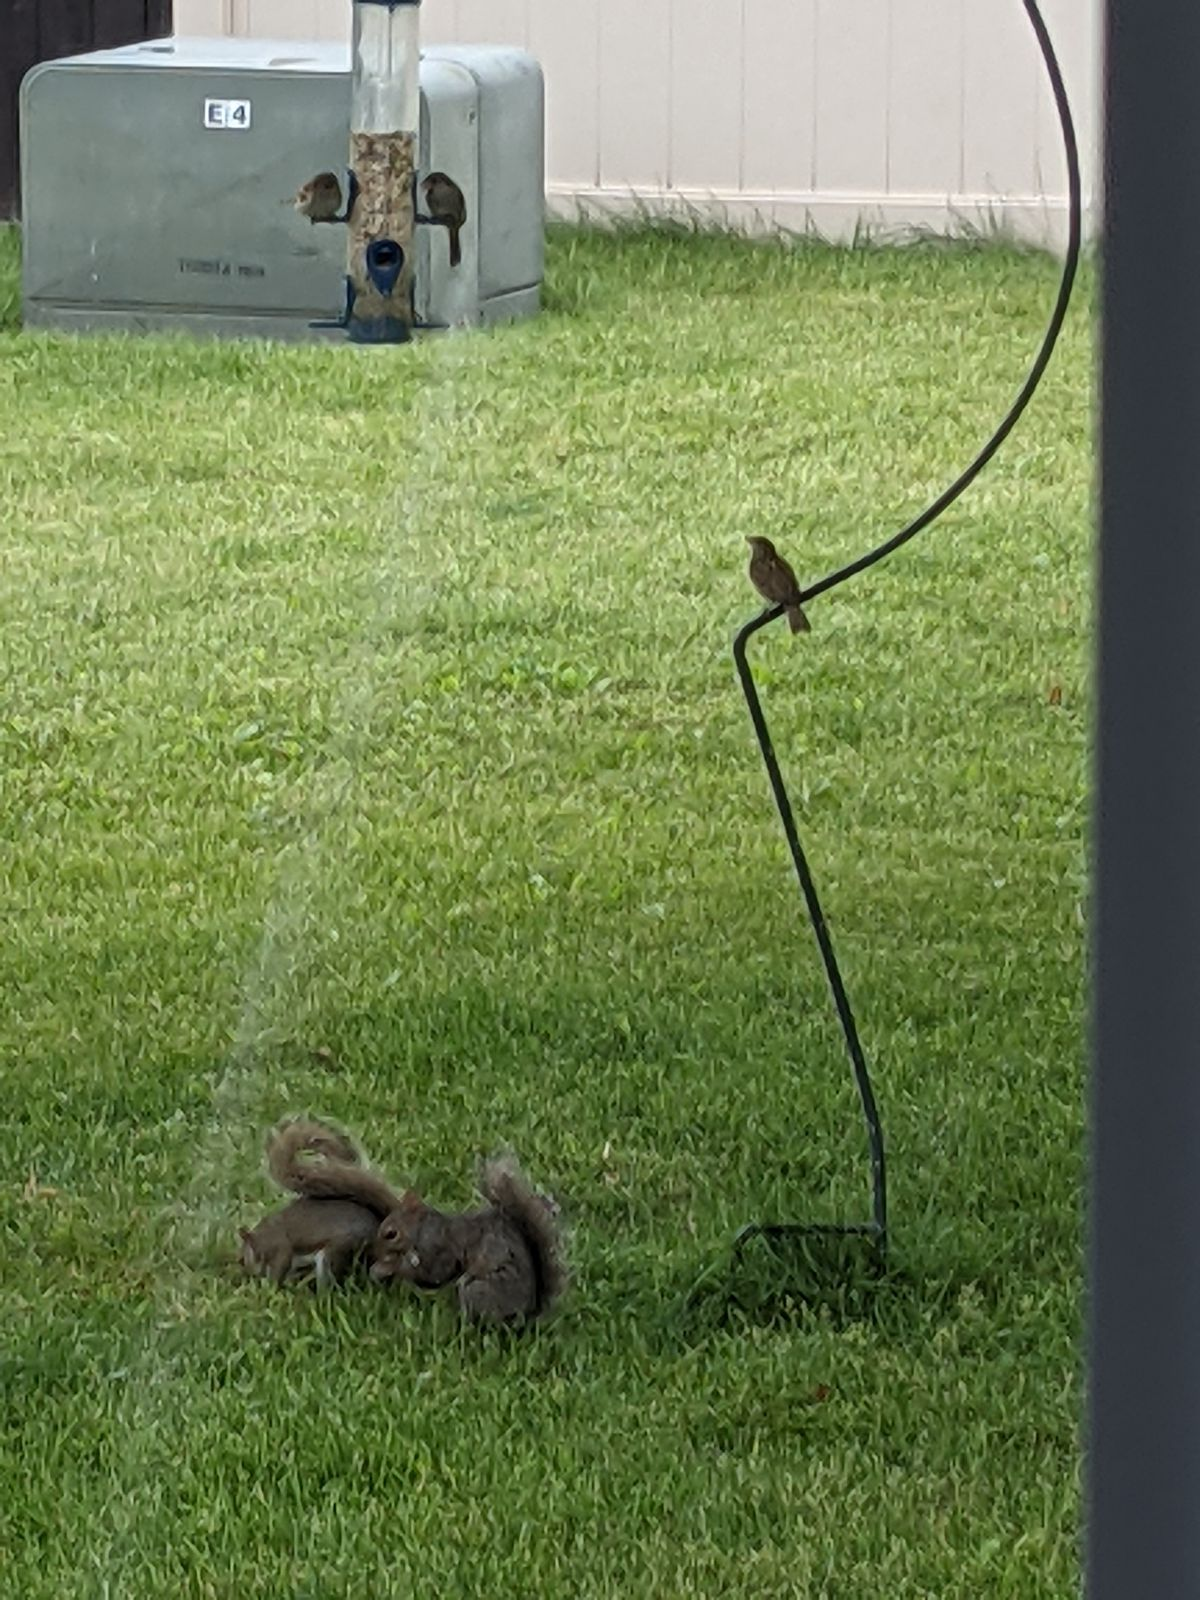 Two backyard rodents squirrel away spilled grain under a bird feeder, while one bird sits and waits its turn. Credit: Dale Bowman